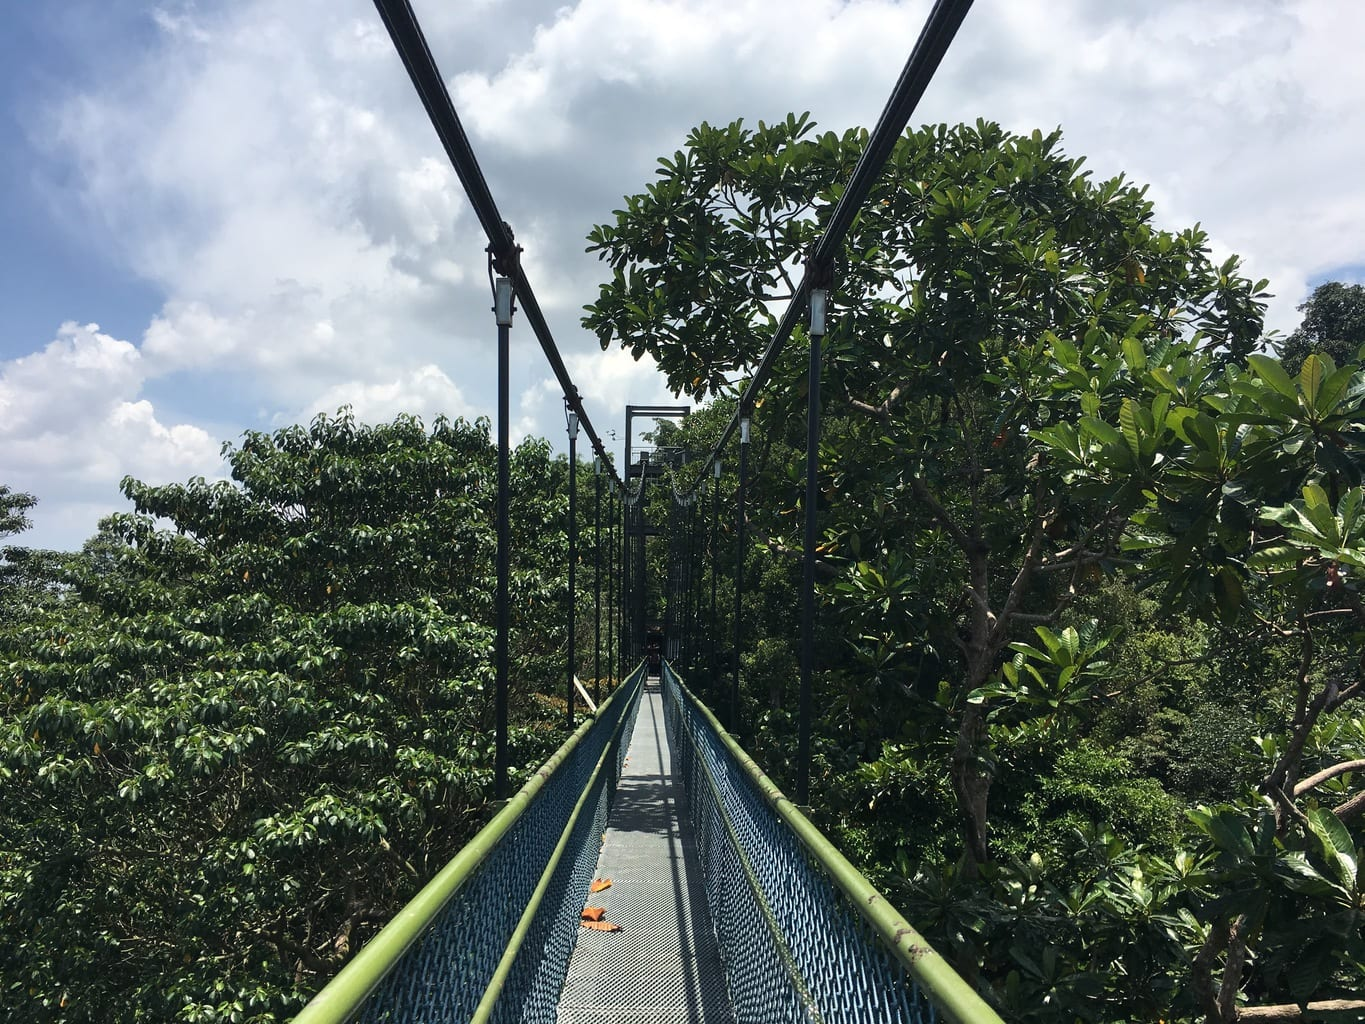 MacRitchie suspended bridge